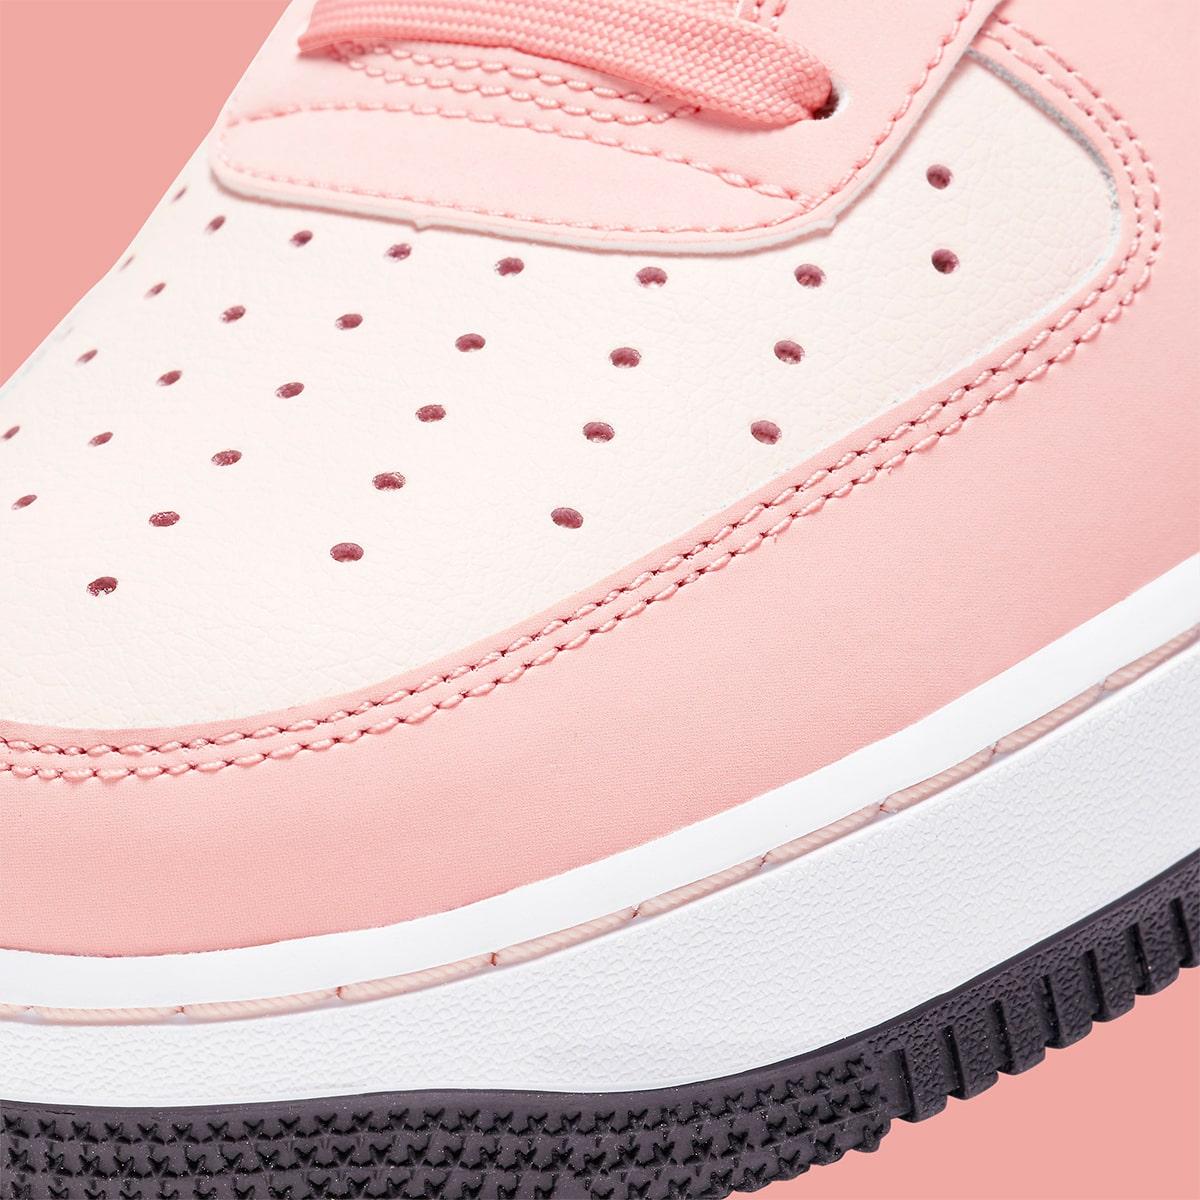 Nike's Air Force 1 Gets Popped With Cherry Blossom Prints